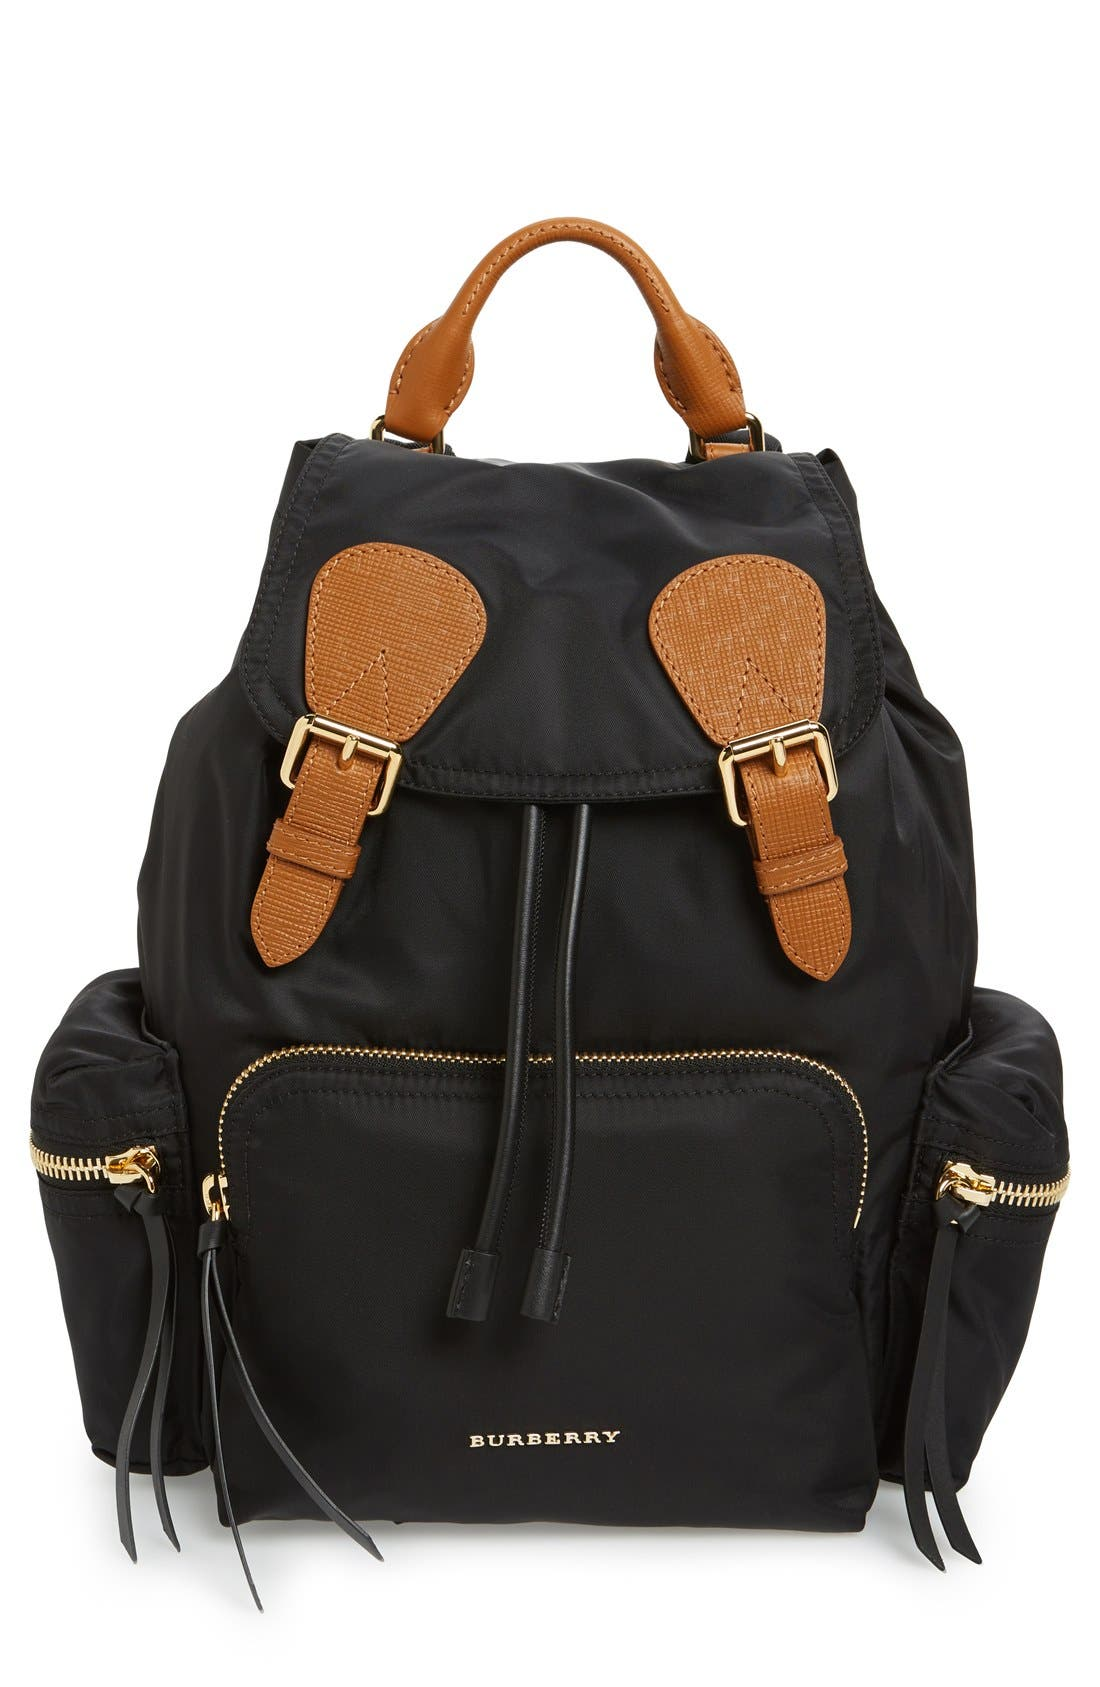 'Medium Runway Rucksack' Nylon Backpack,                         Main,                         color, Black